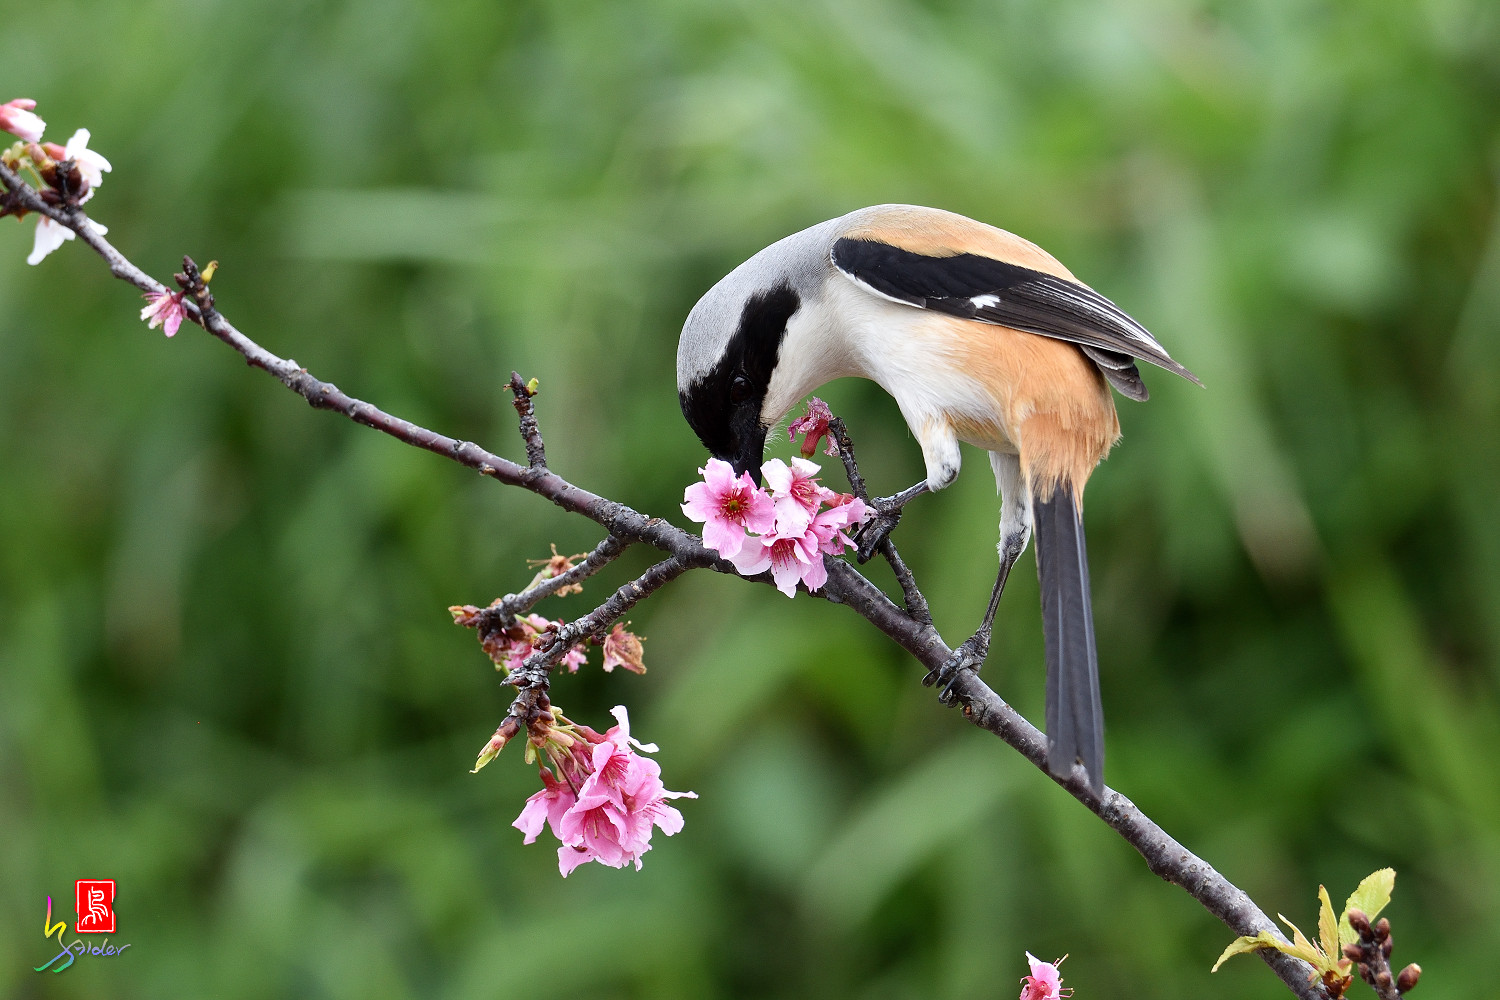 Long-tailed_Shrike_5536